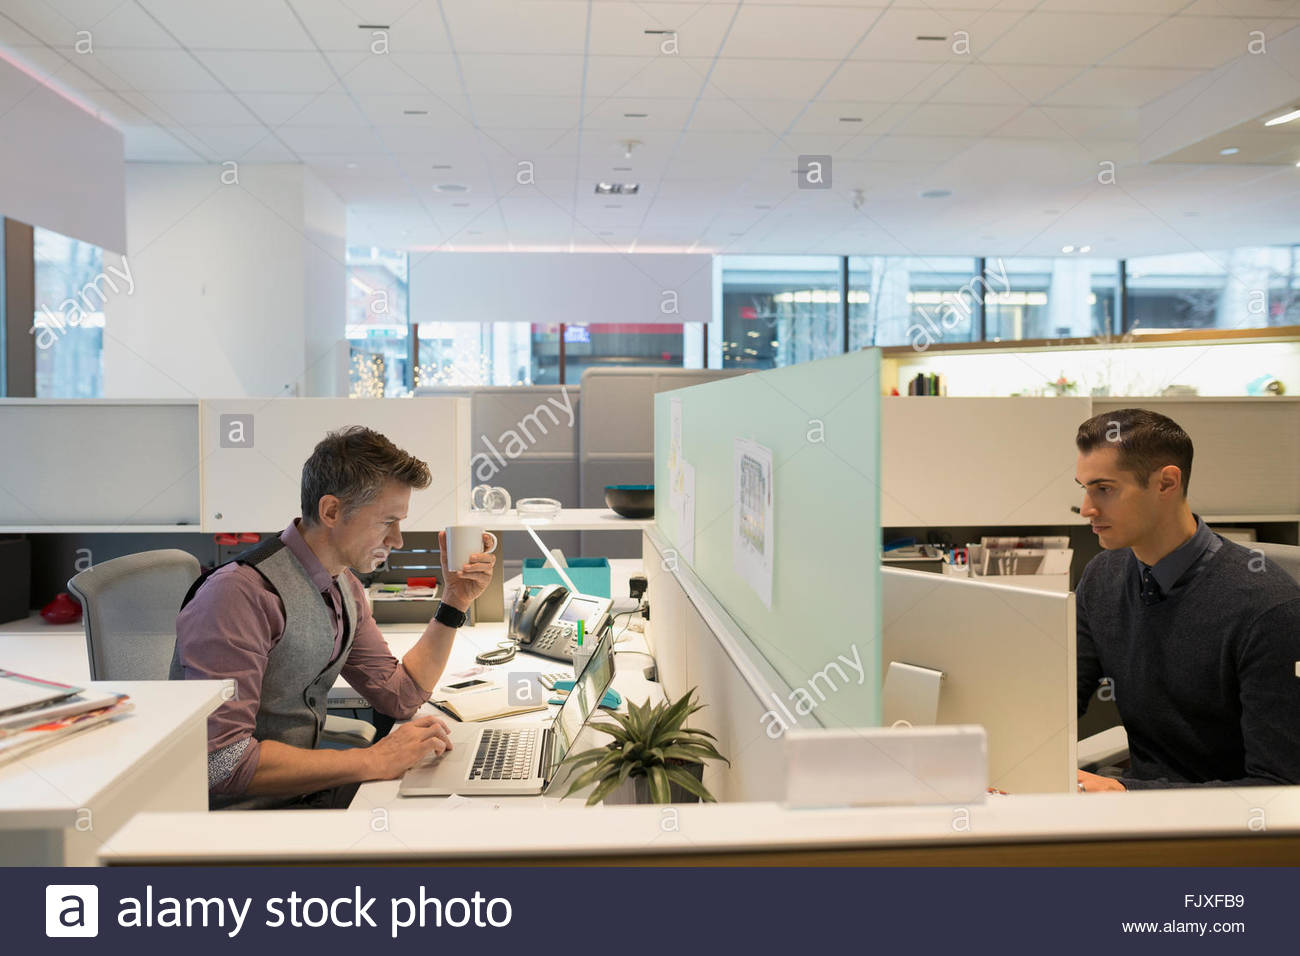 Businessmen working in cubicles in office - Stock Image